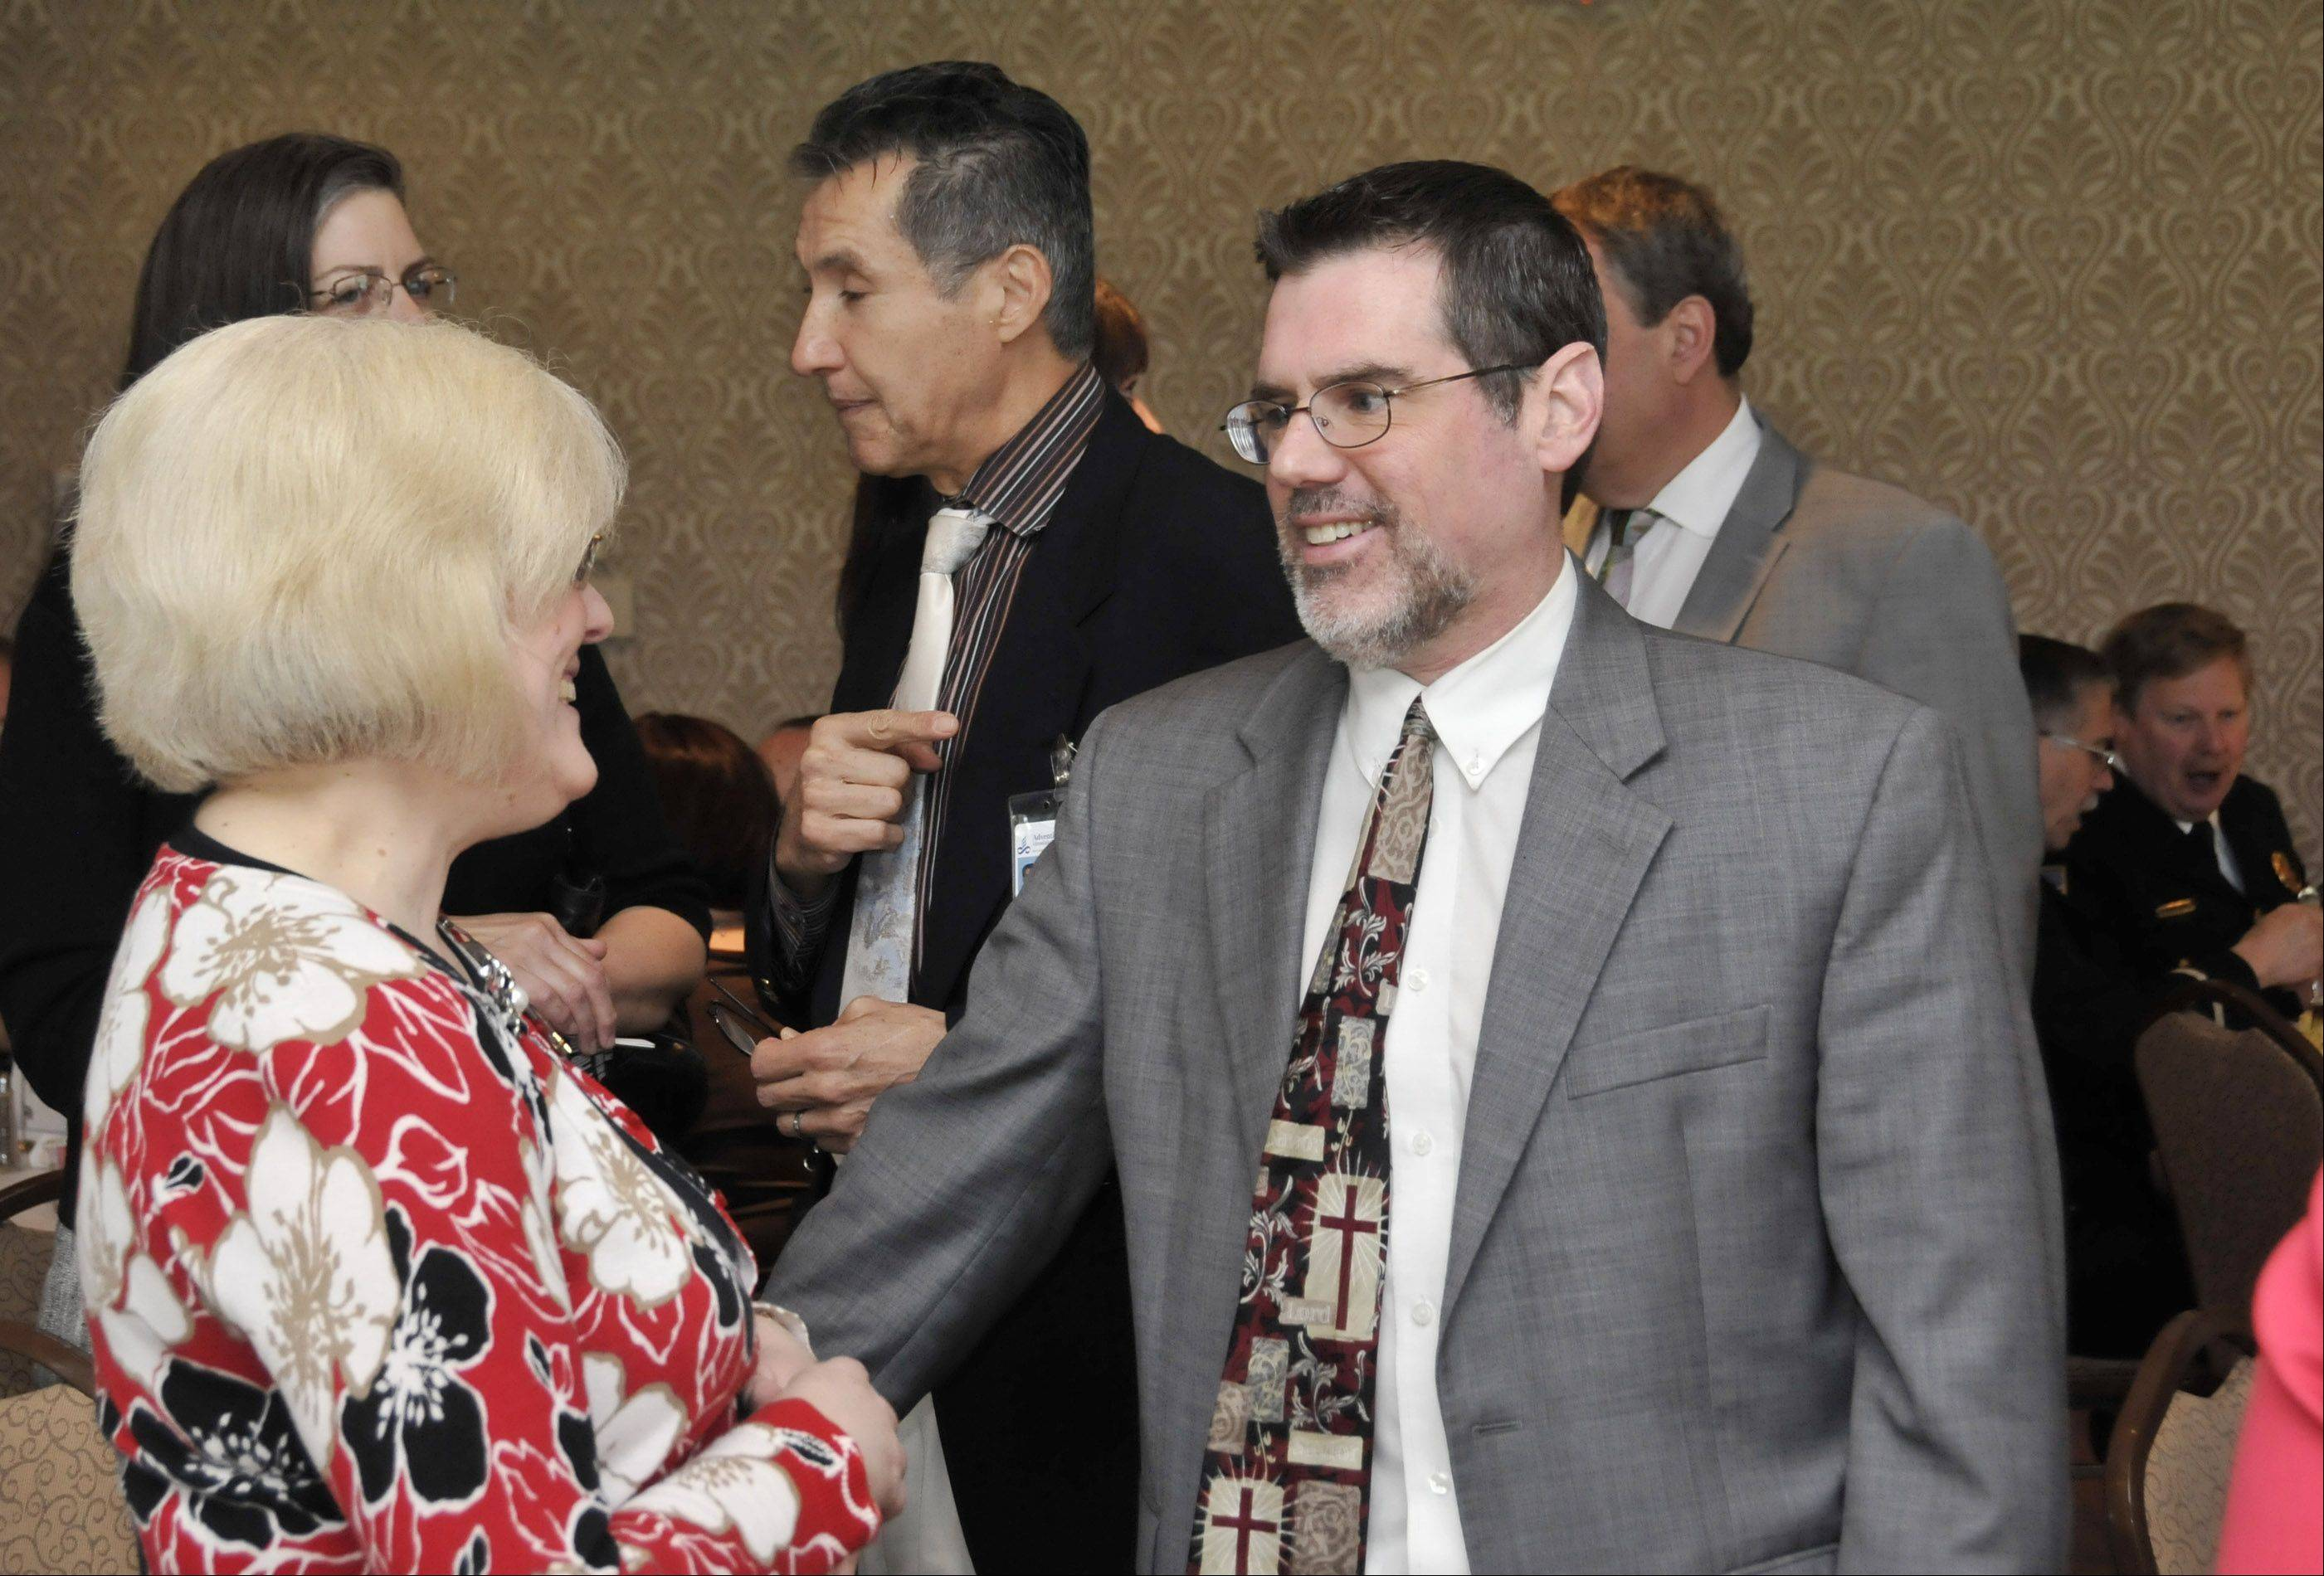 Keynote speaker Rev. David Sitler from the Glen Ellyn Seventh-day Adventist Church chats with hospital chaplain Debra Hill at Thursday's National Day of Prayer breakfast in Glendale Heights.